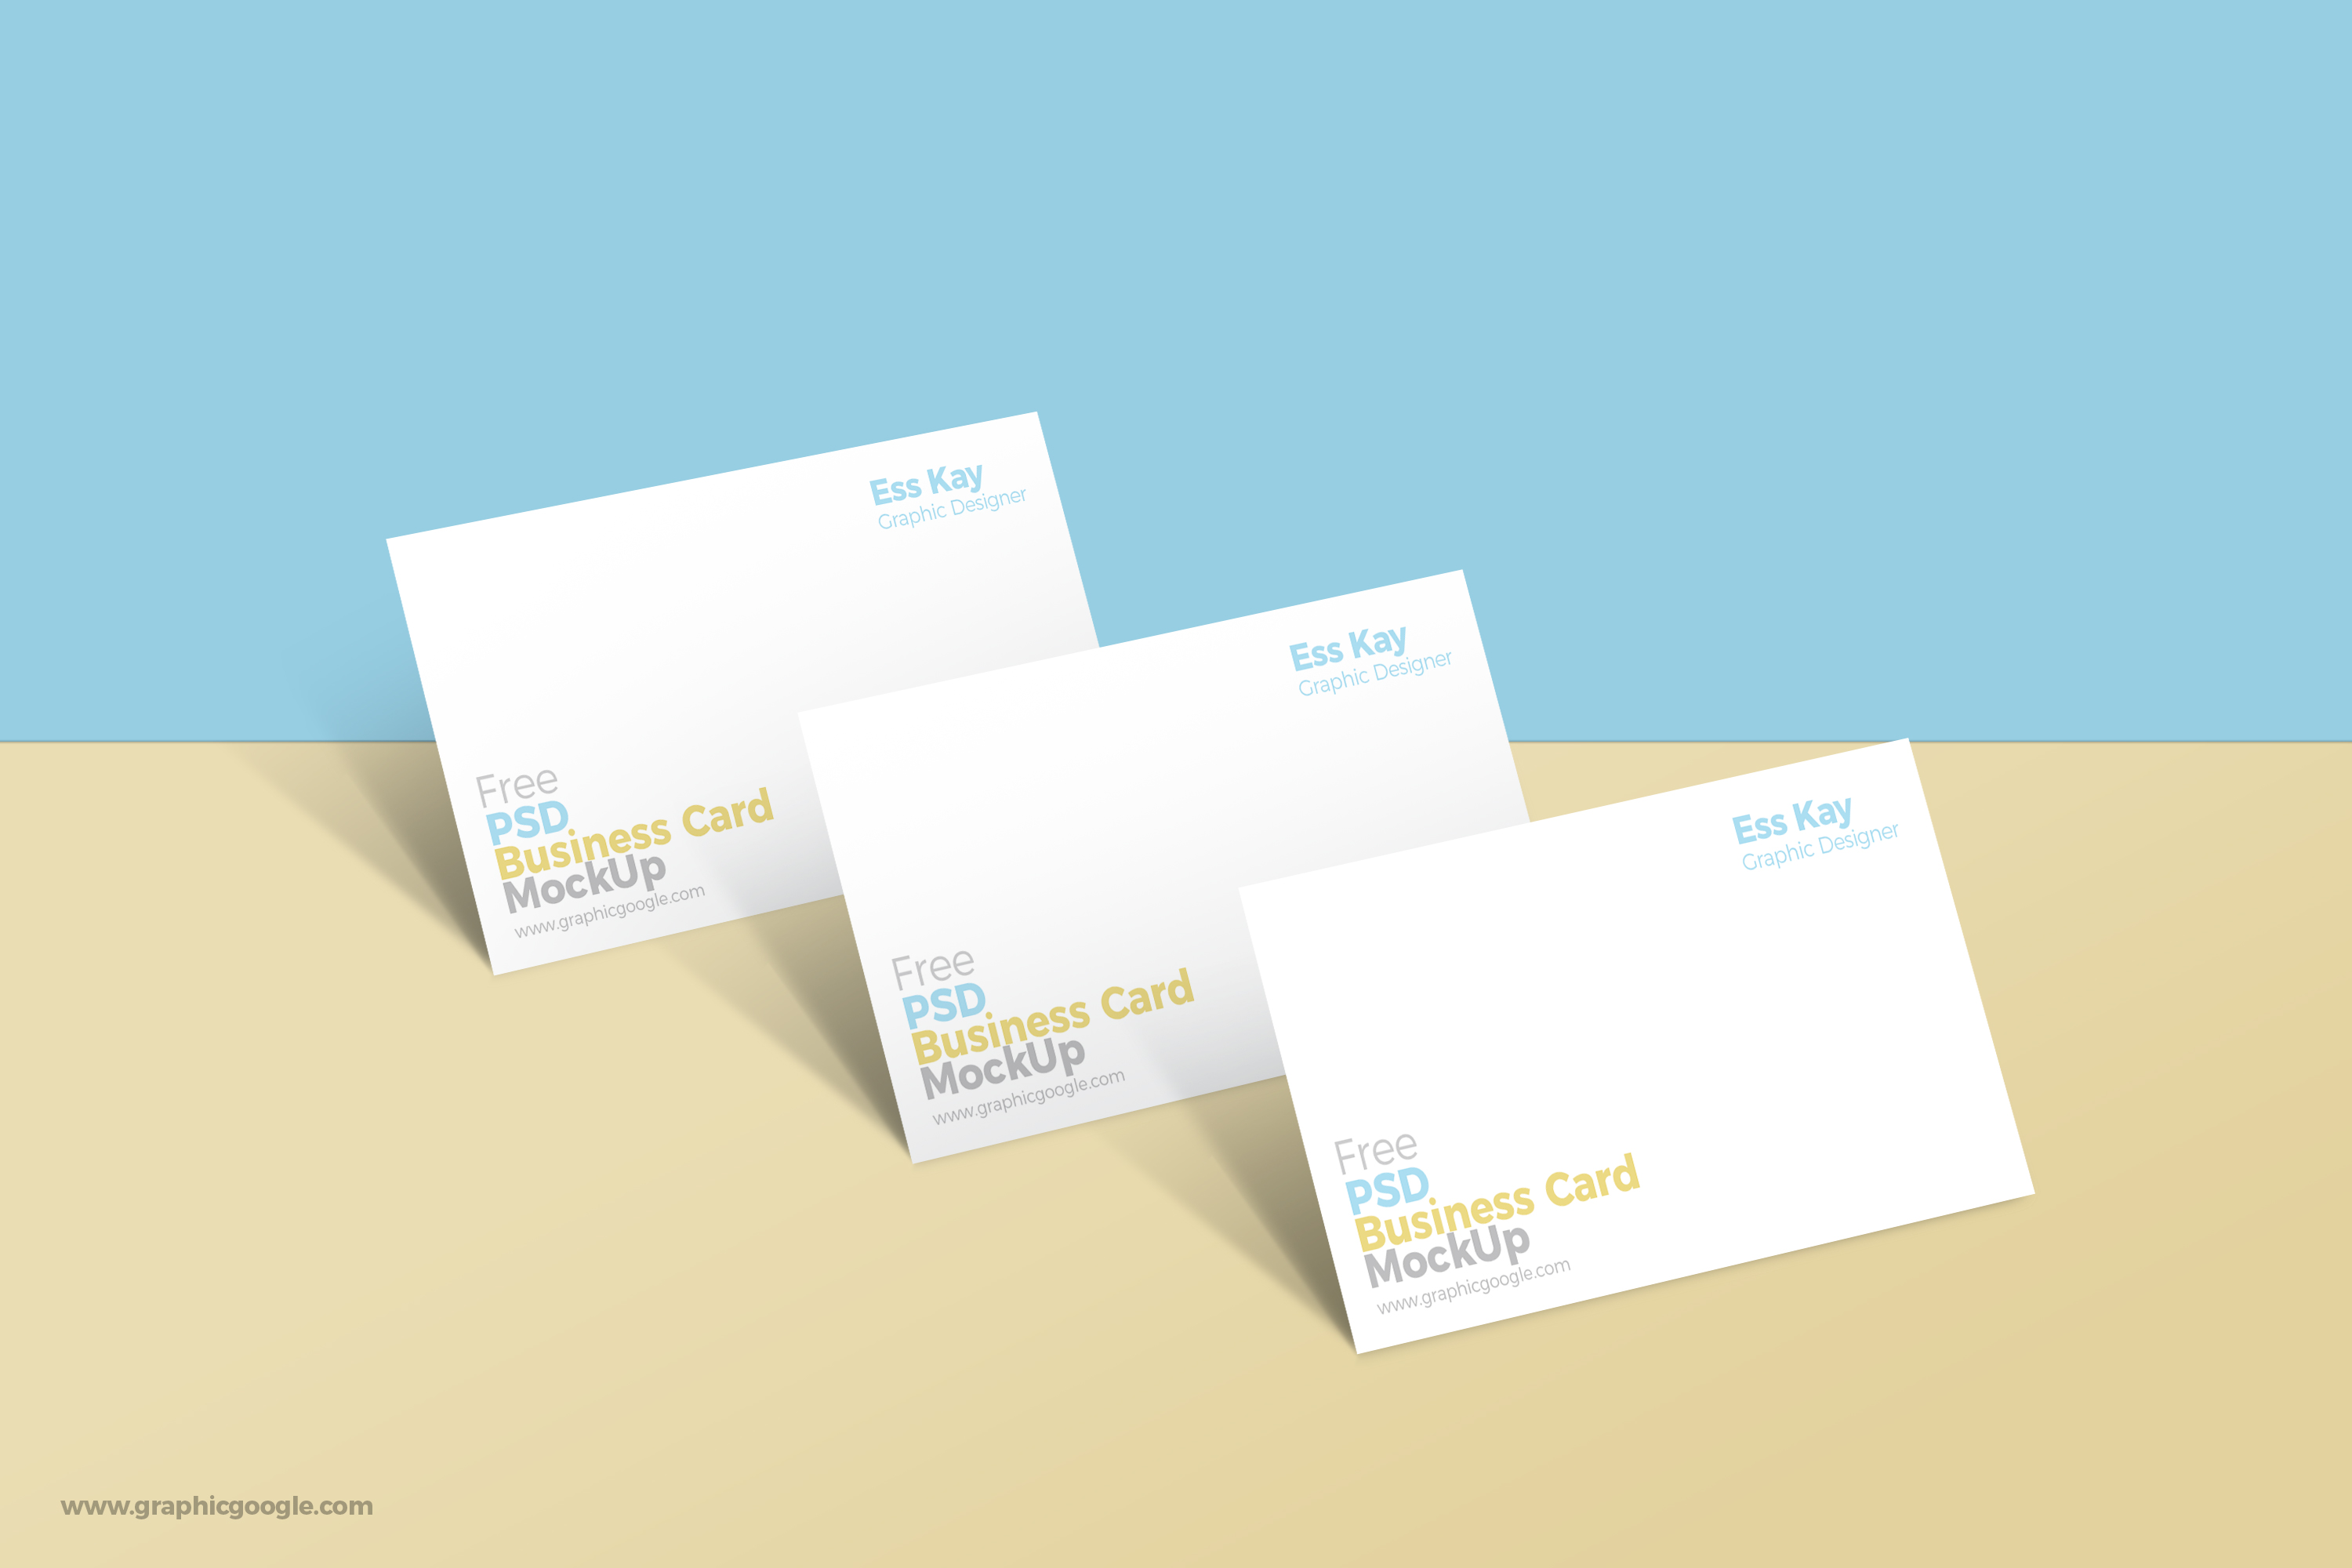 Free psd business card mockup free psd business card mockup colourmoves